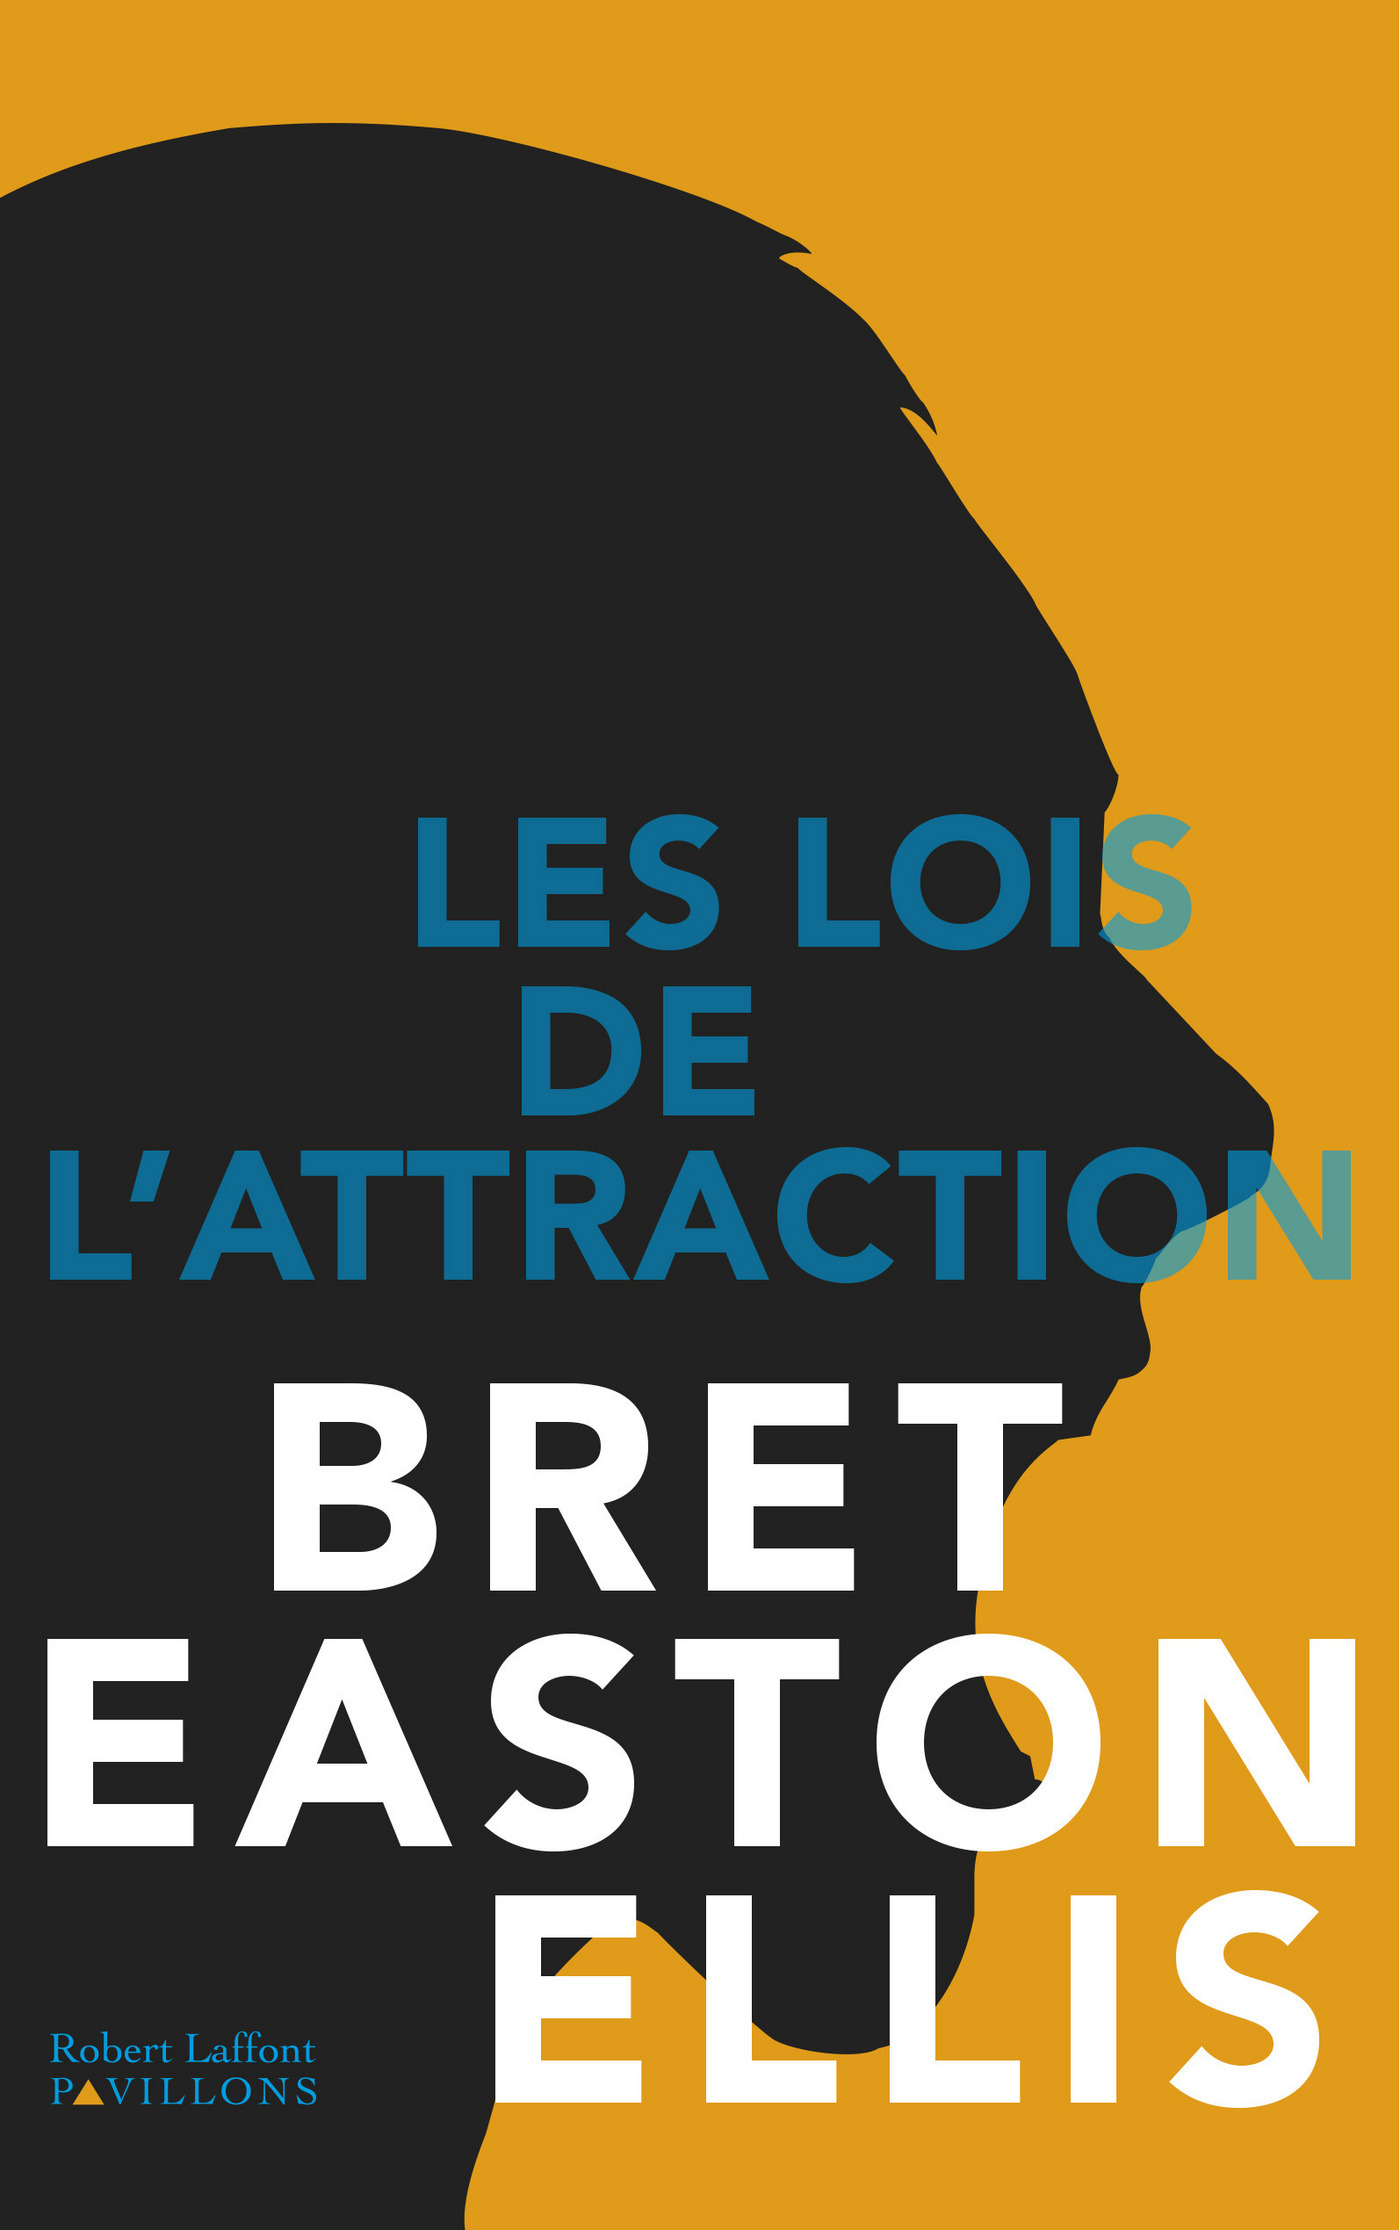 Les Lois de l'attraction | EASTON ELLIS, Bret